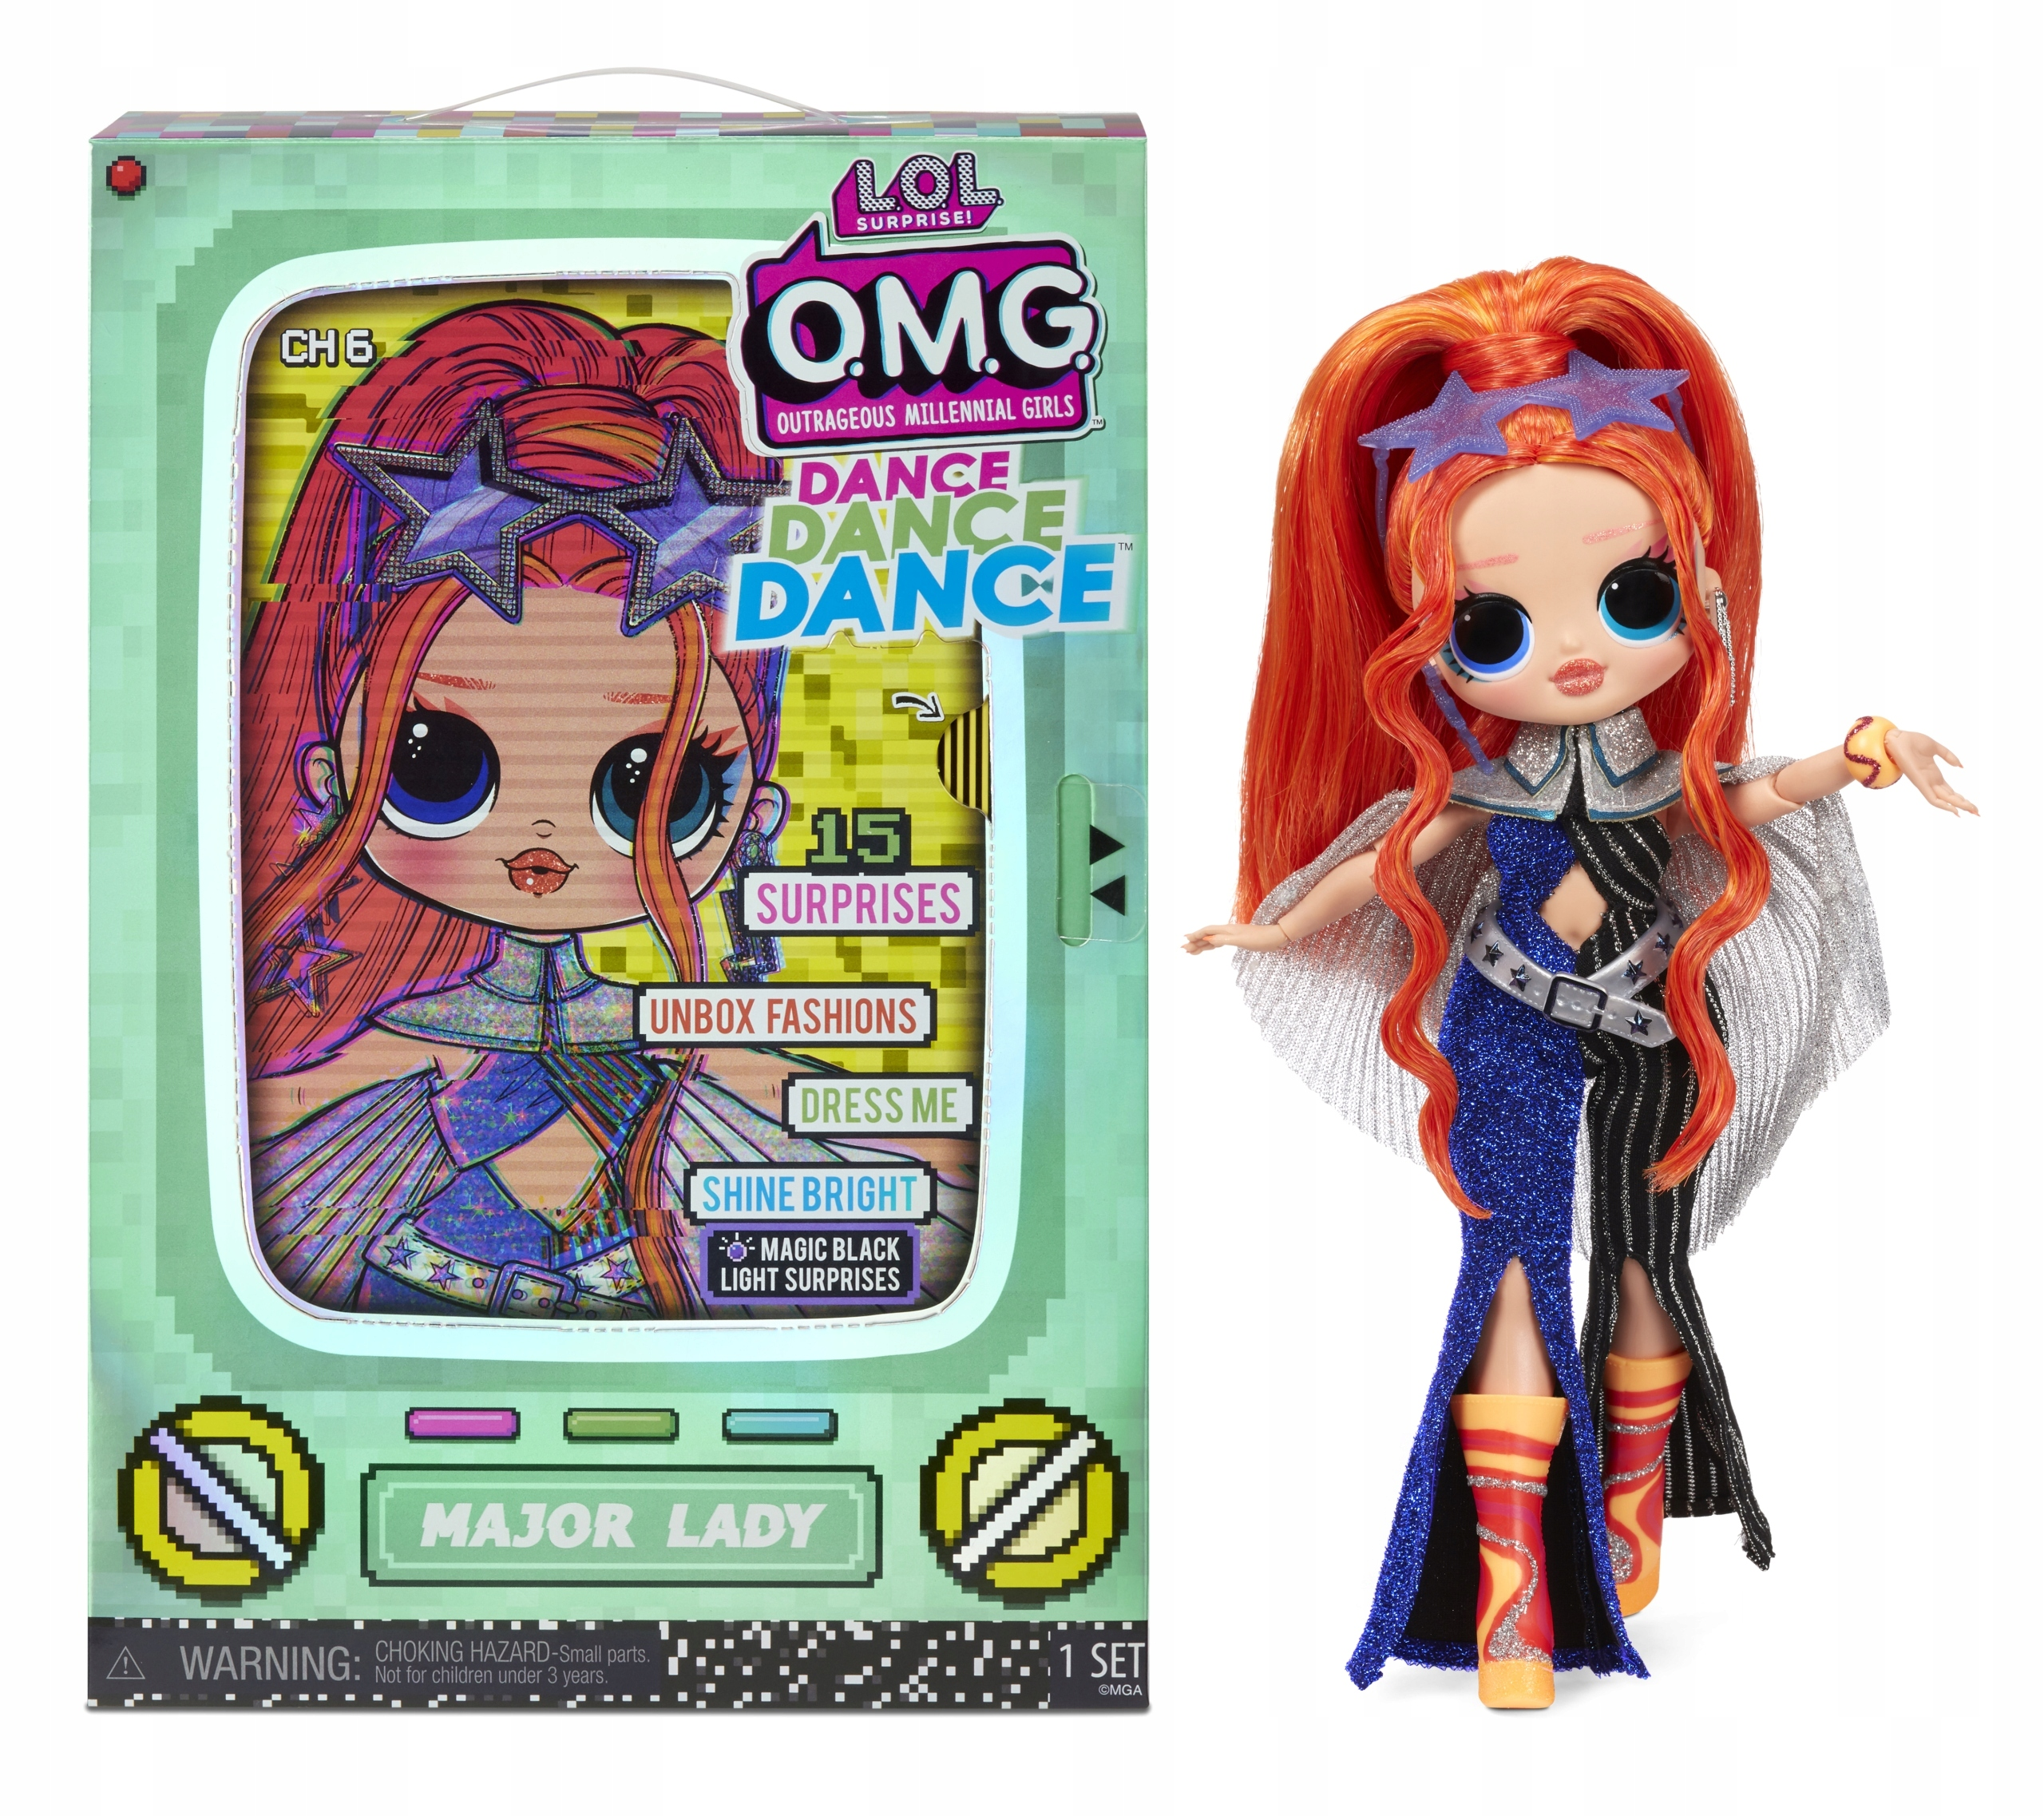 L.O.L. Surprise OMG Dance Doll- Major Lady 117889